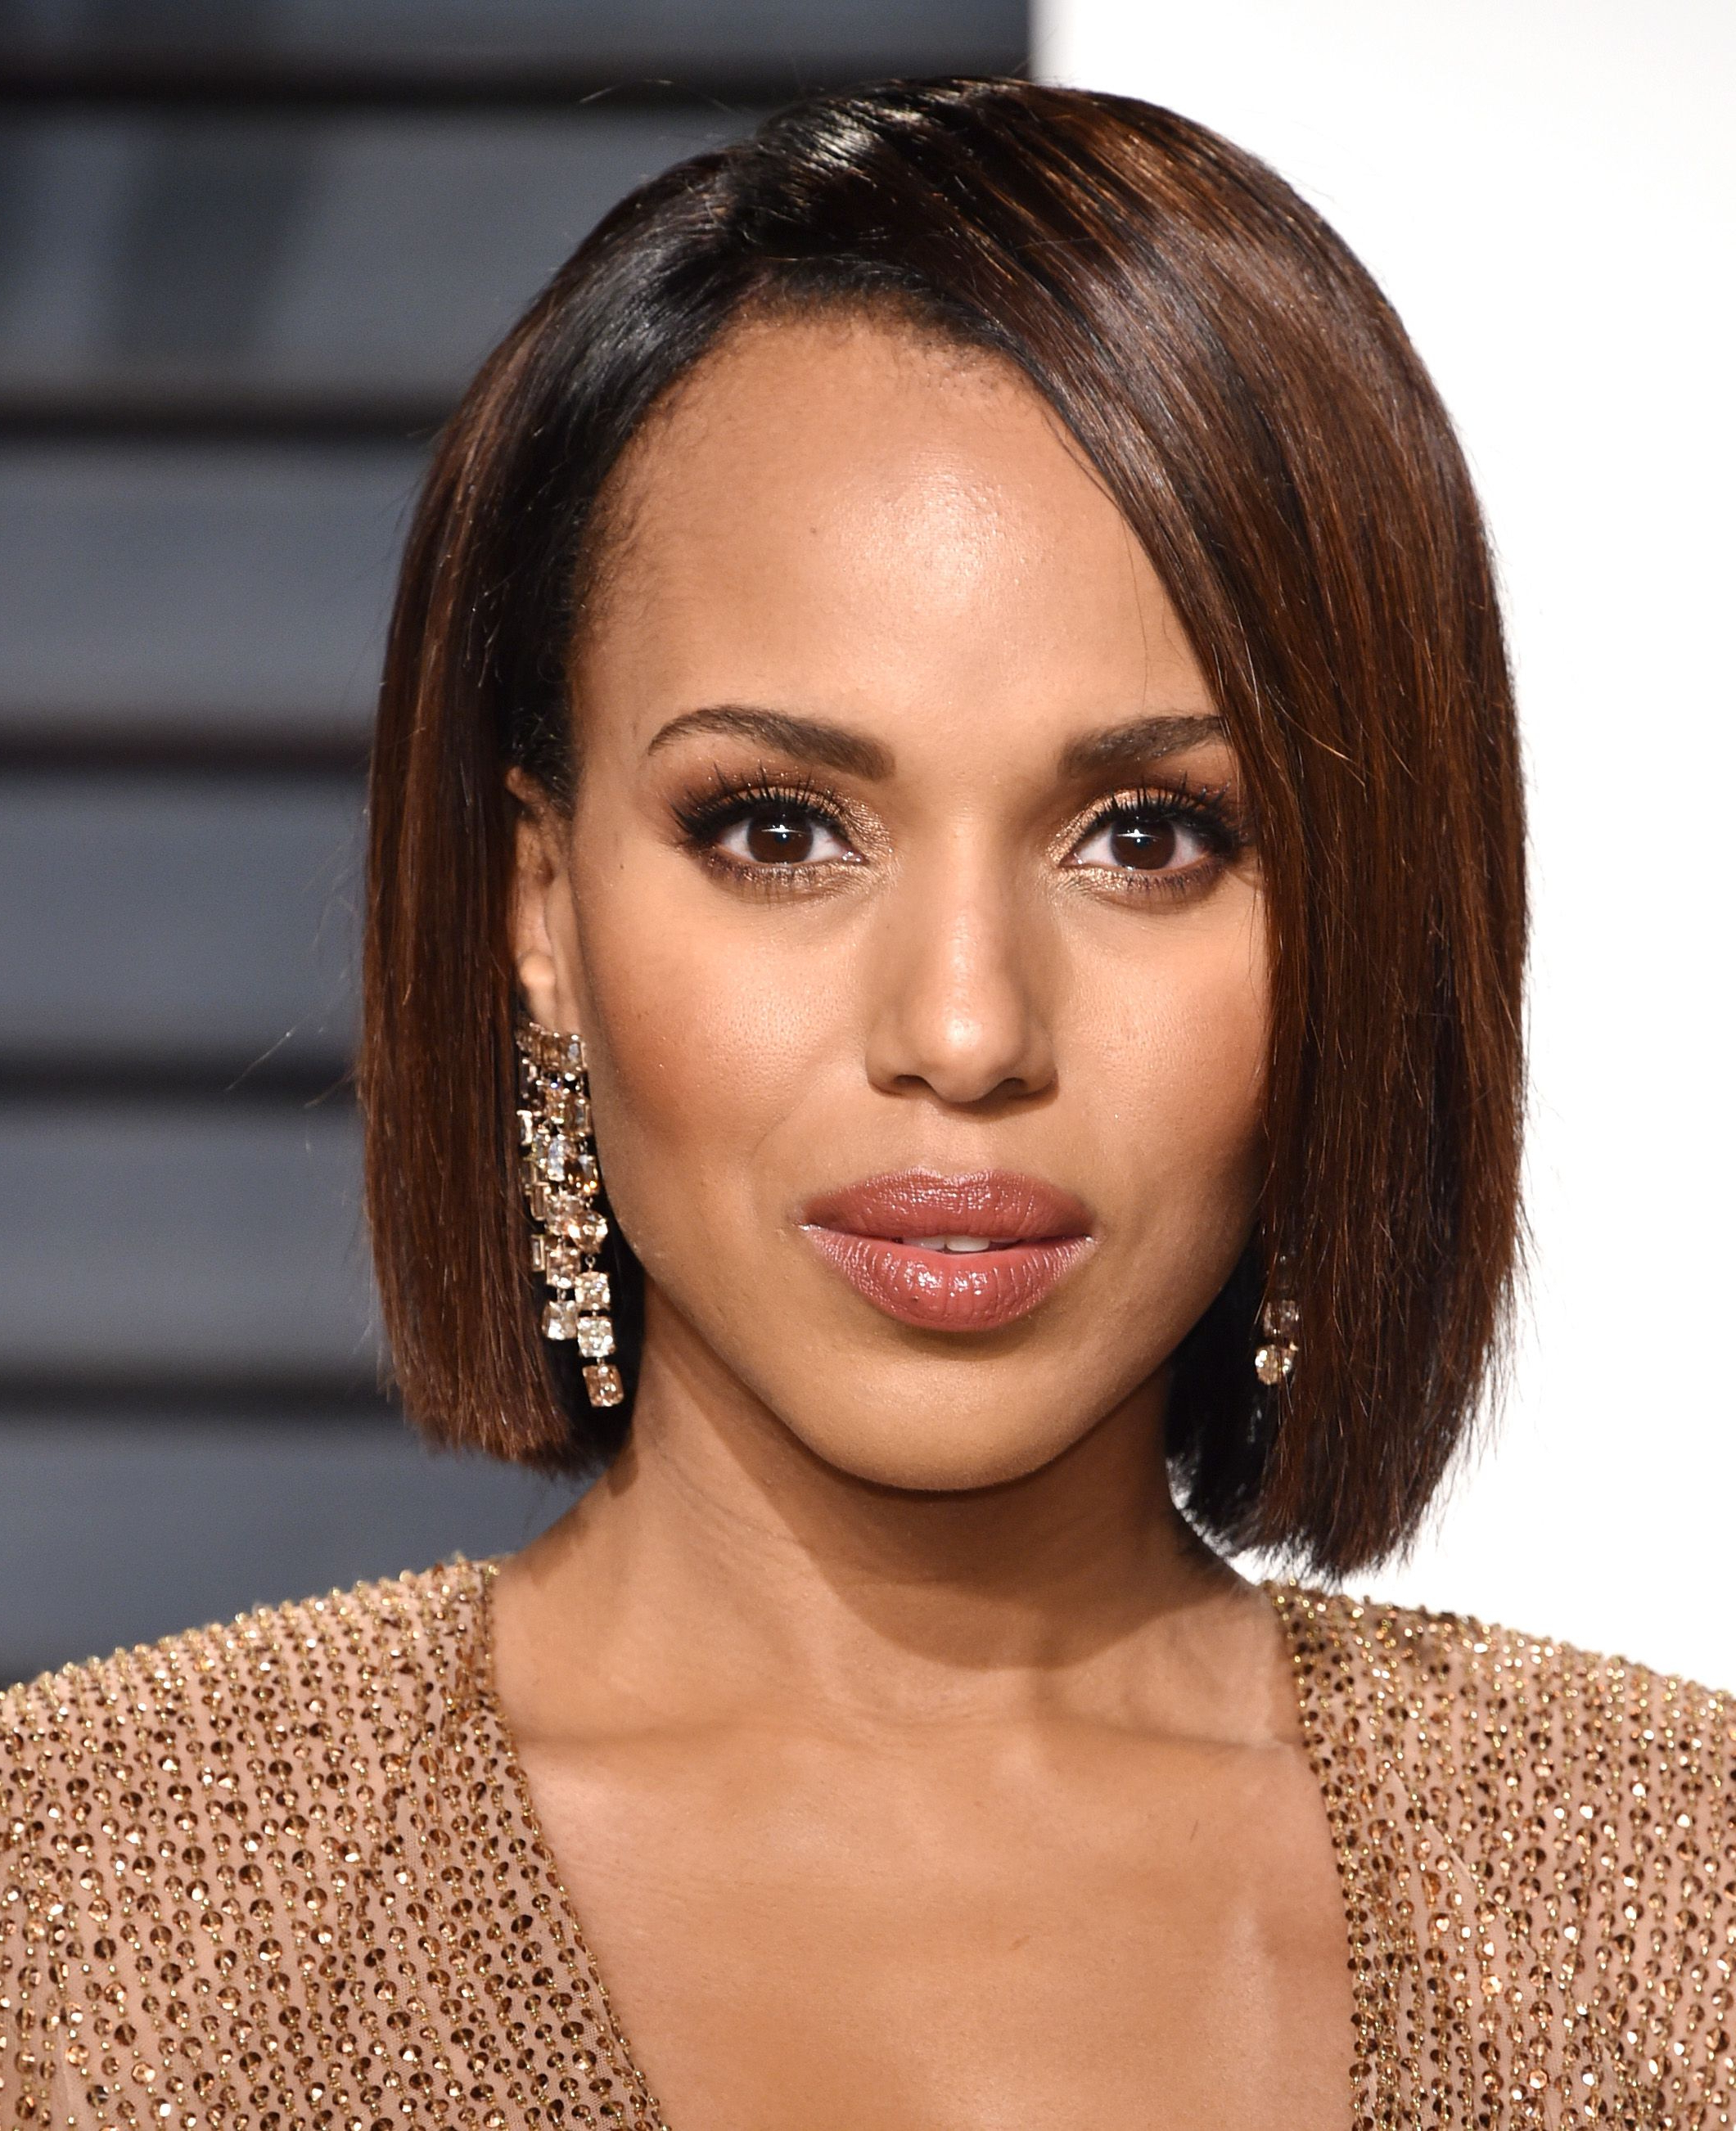 Bob Hairstyles For 2018 – 53 Short Haircut Trends To Try Now With Regard To Wavy Sassy Bob Hairstyles (View 16 of 25)